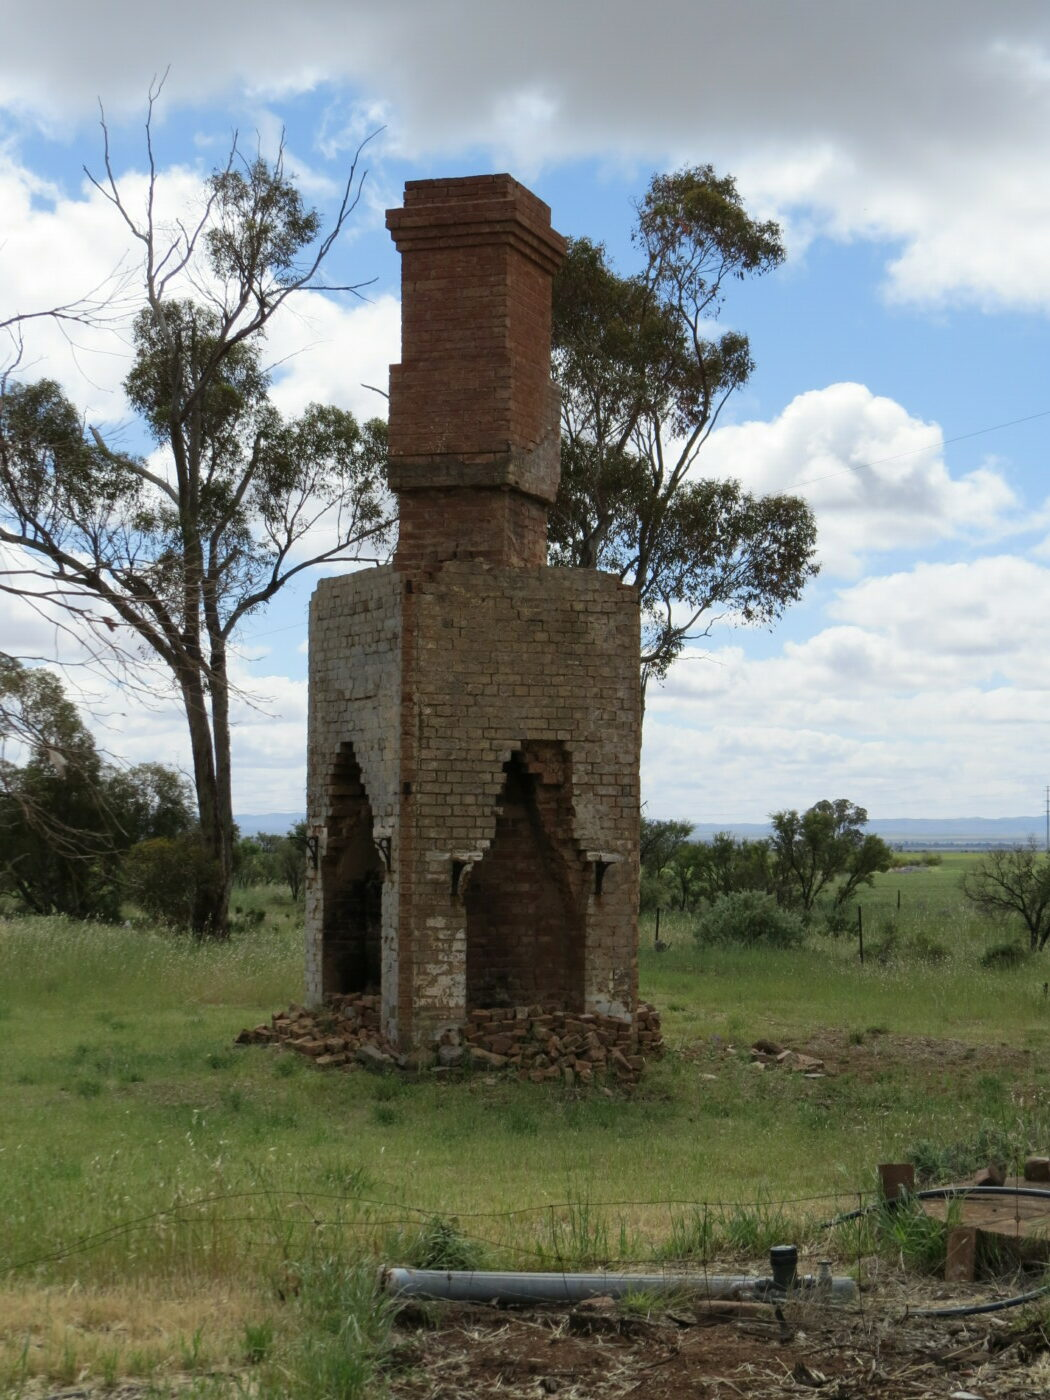 remains of a chimney at the Terka Station location 2020